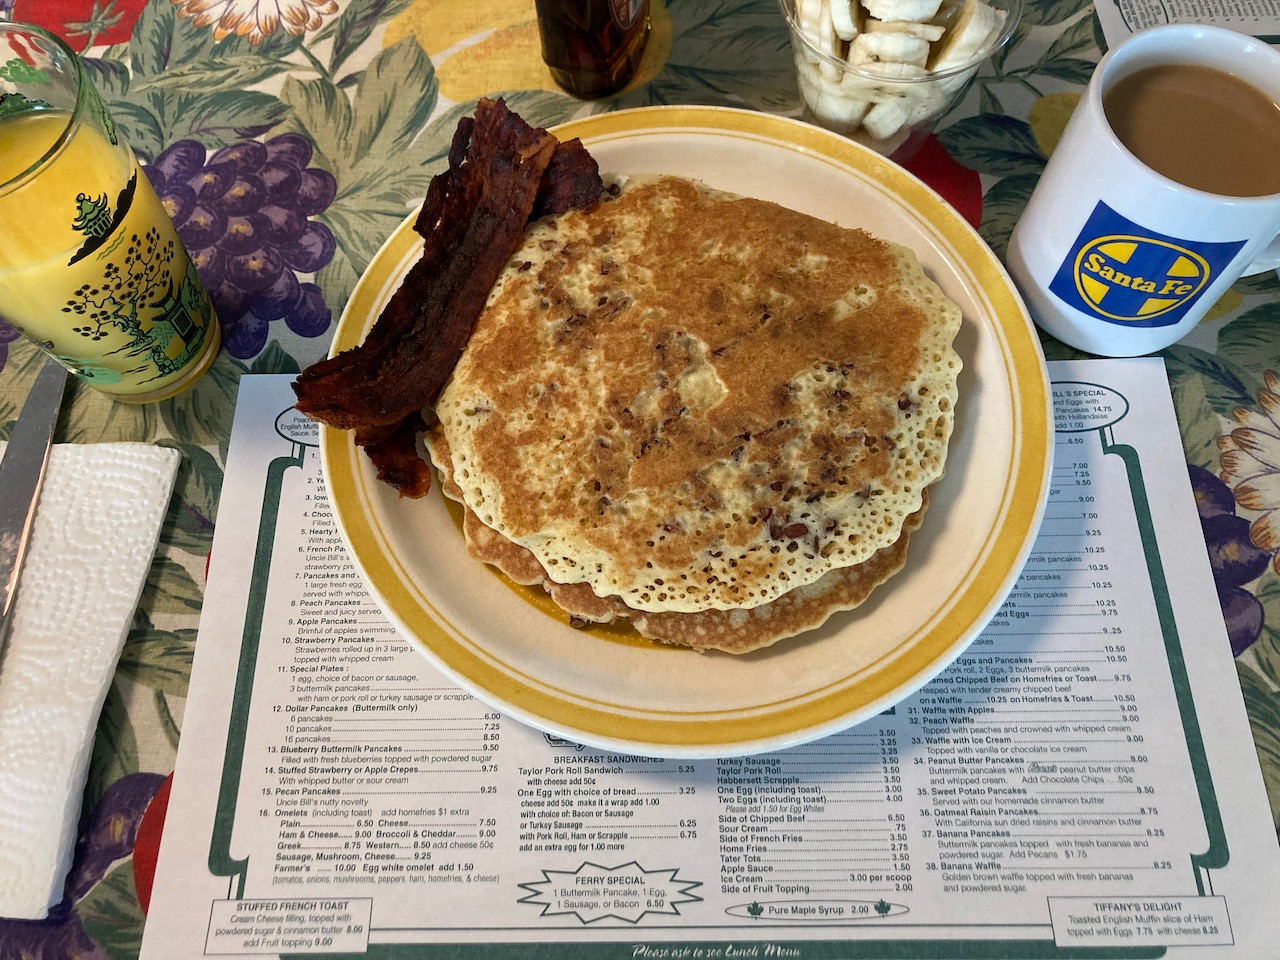 Plate with pancakes and bacon, glass of orange juice, and mug of coffee.